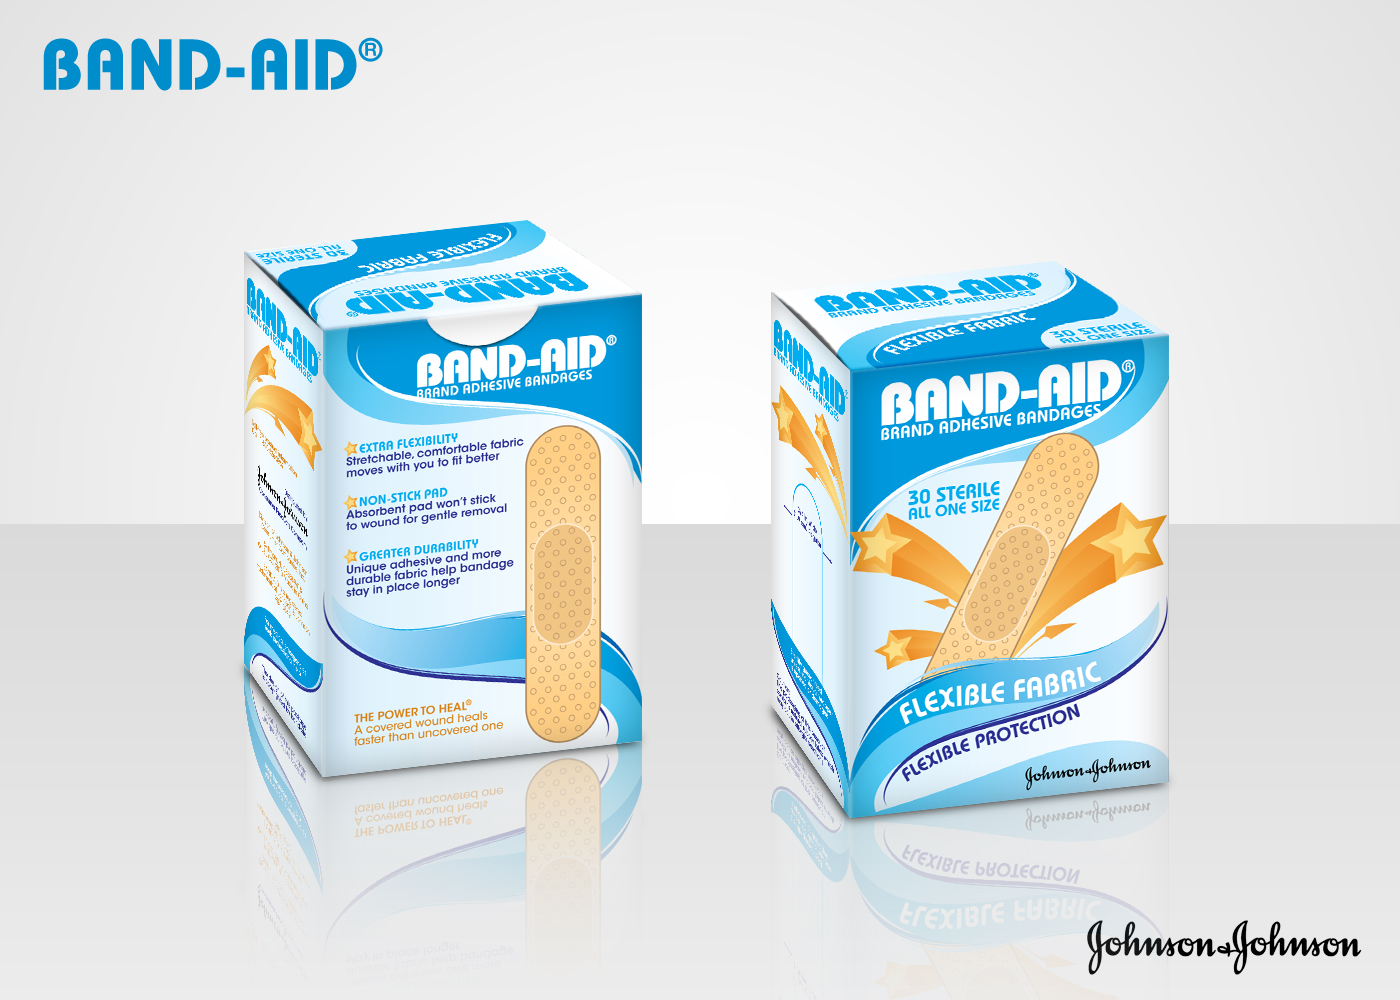 Band-Aid Package Redesign